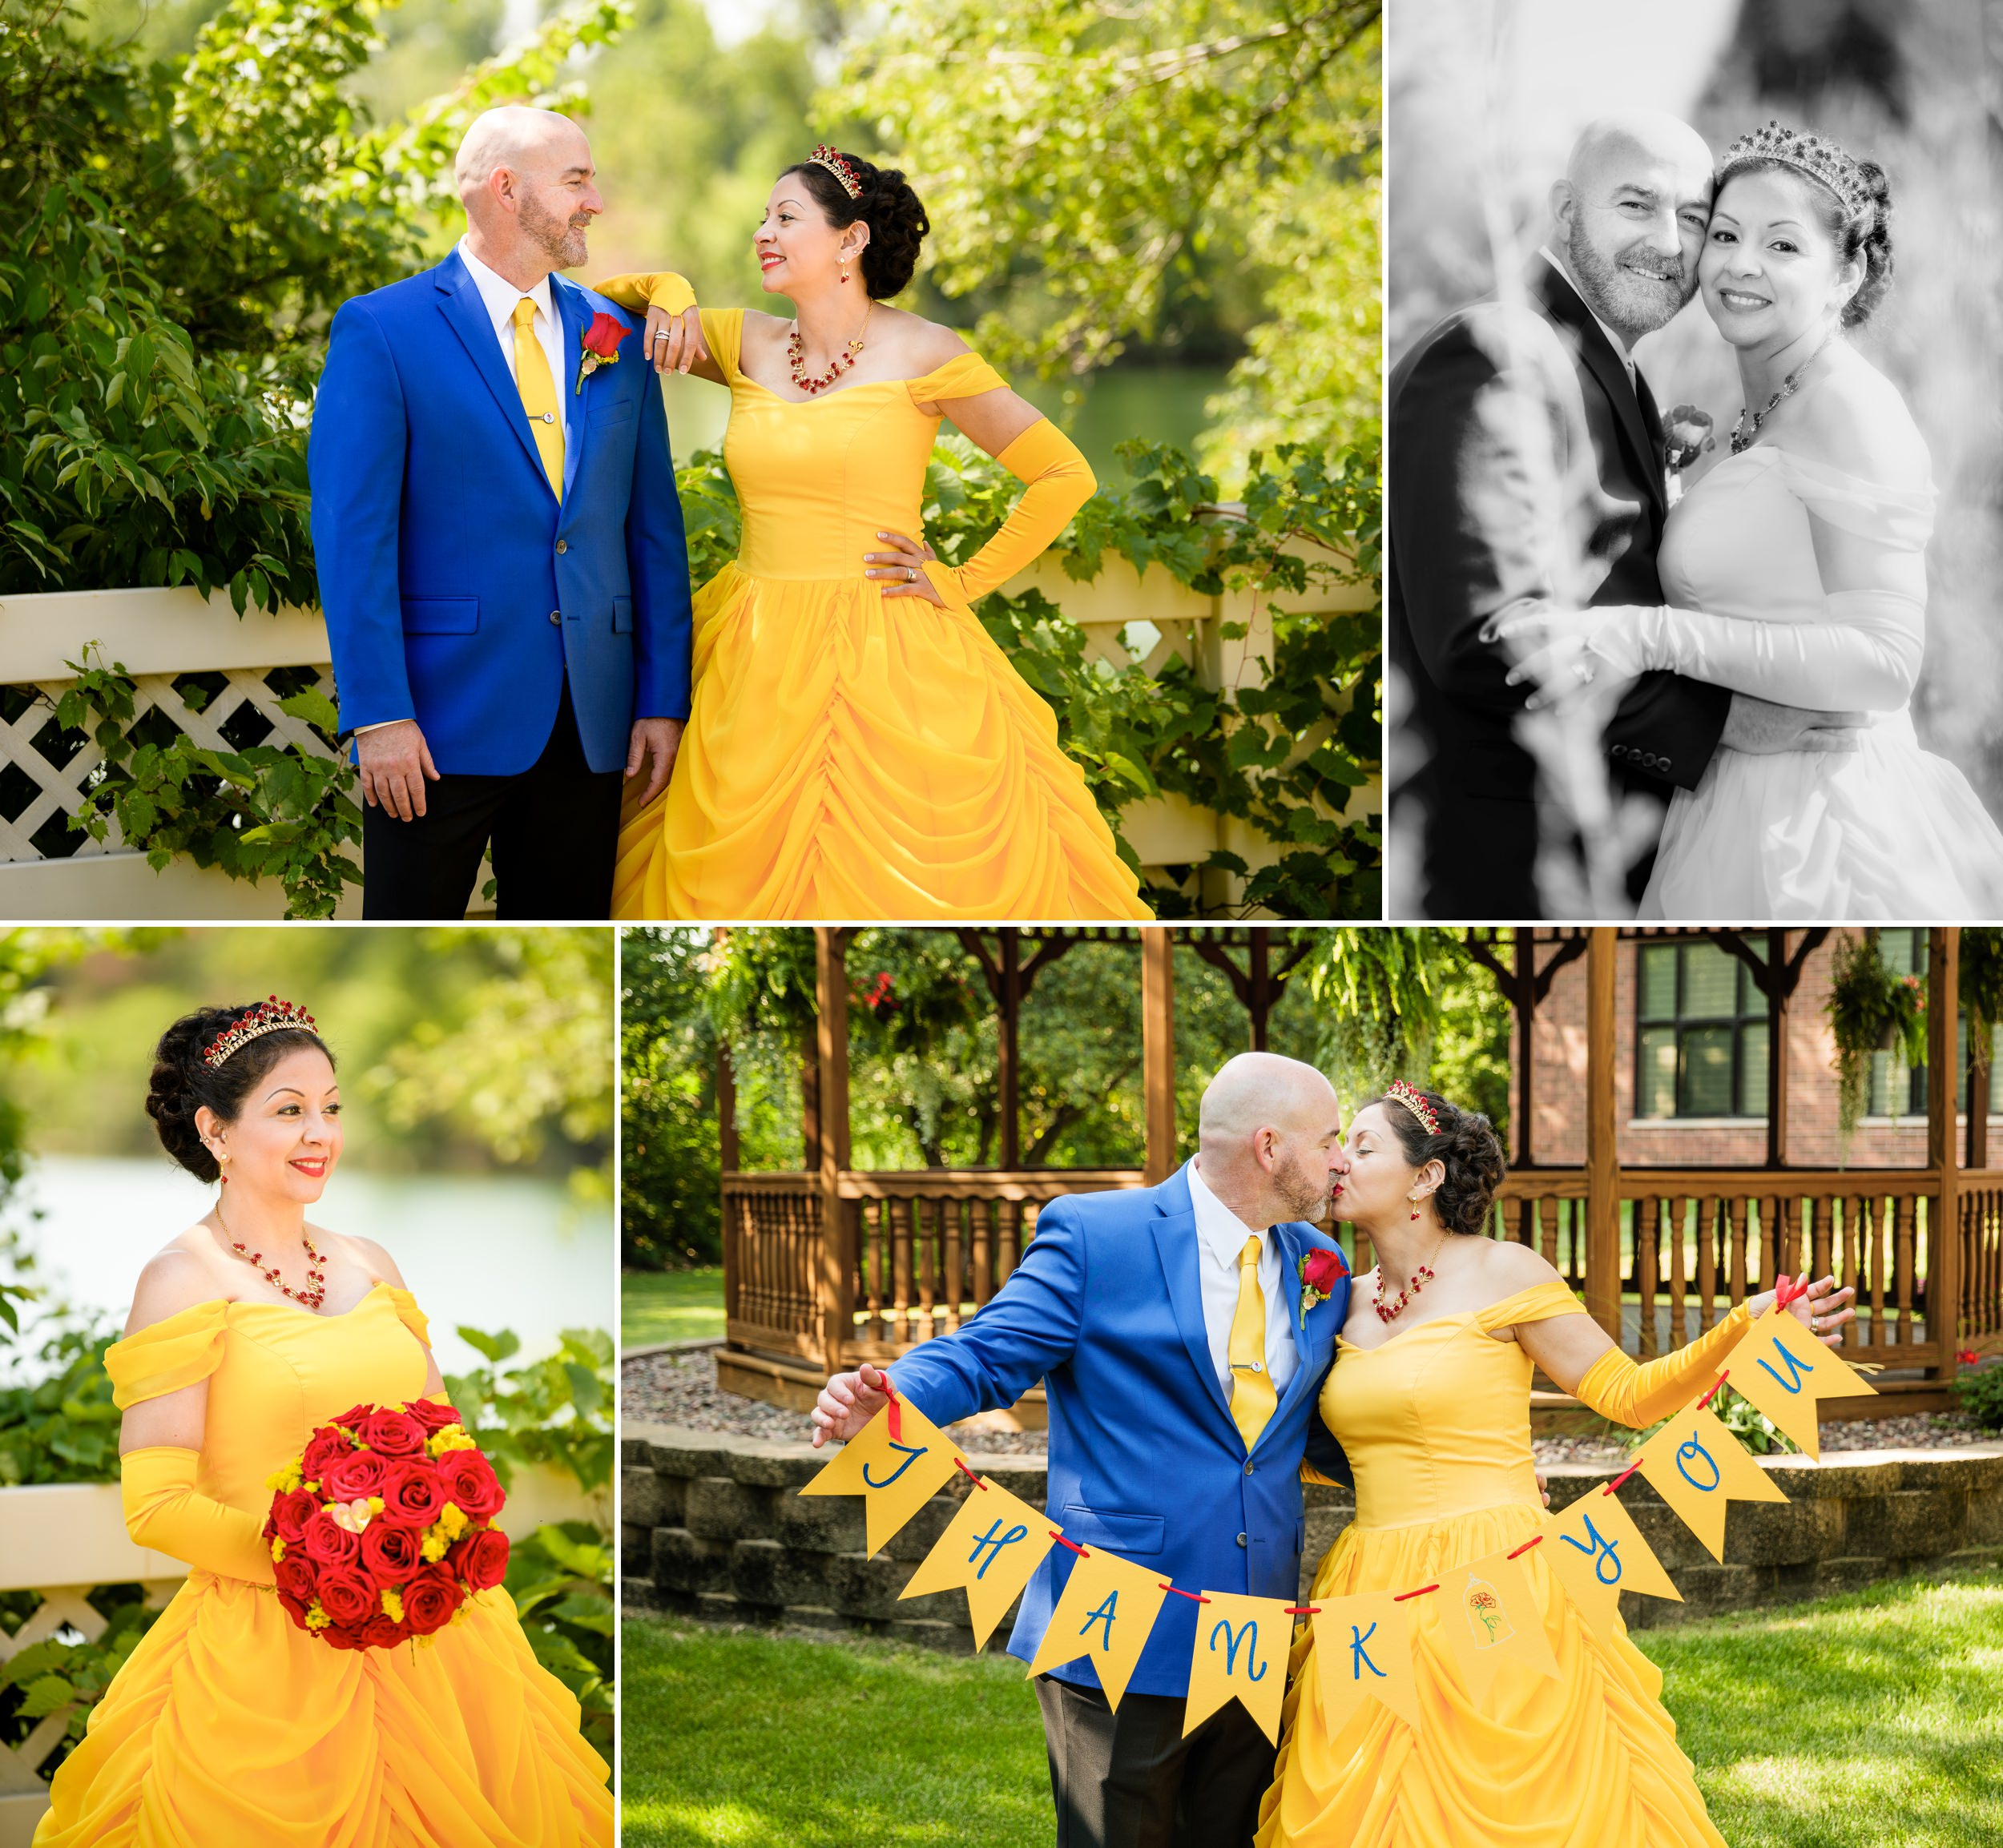 Bride and groom portraits during their Disney themed wedding.